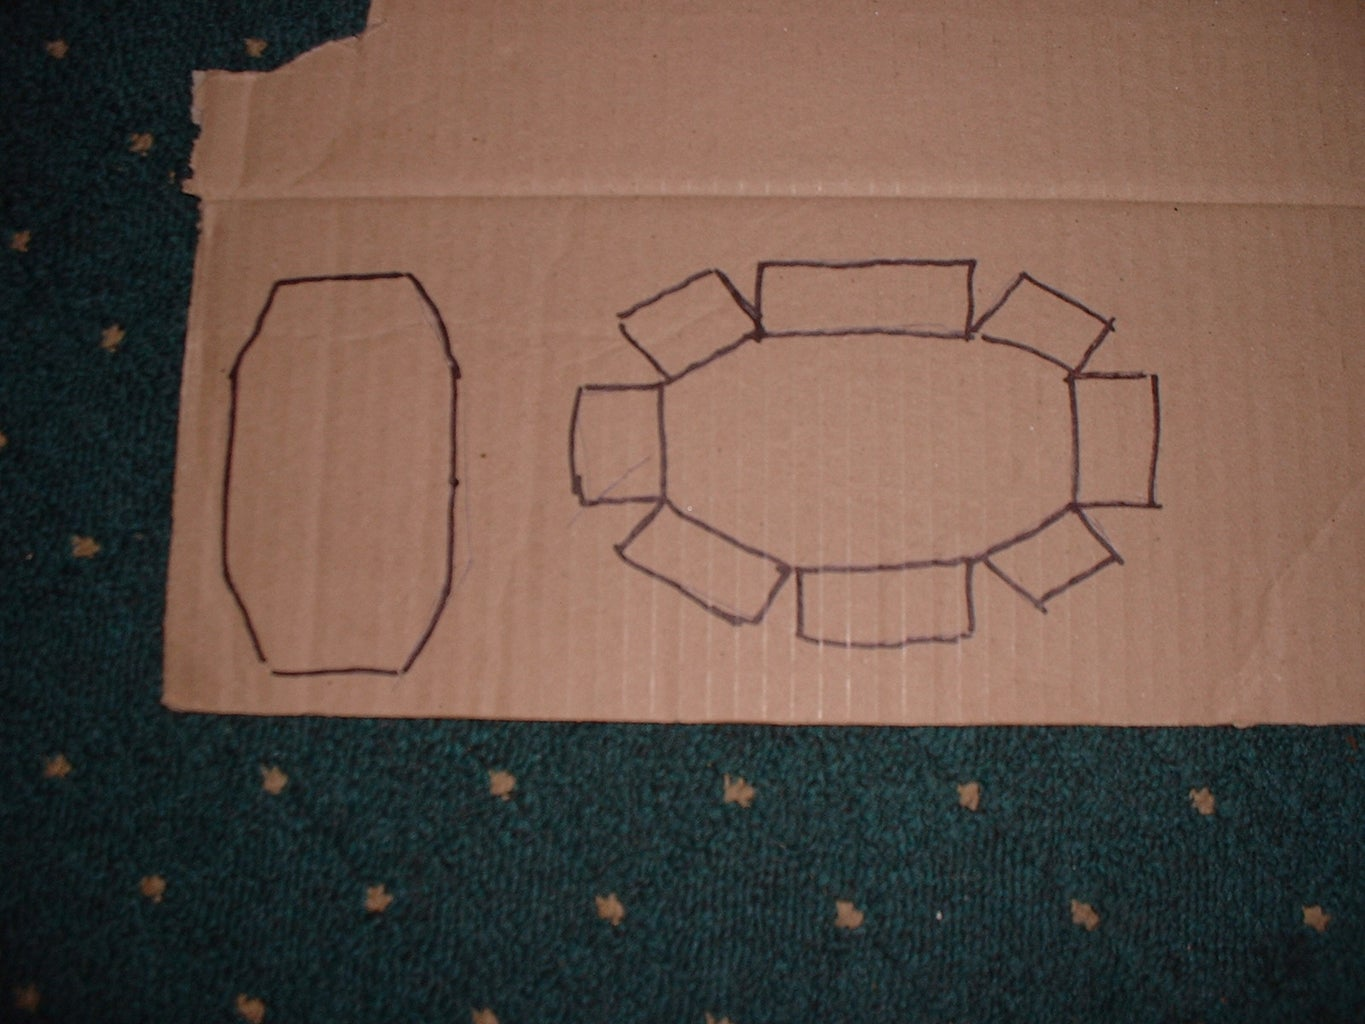 Making a Morpher, Marking the Card.